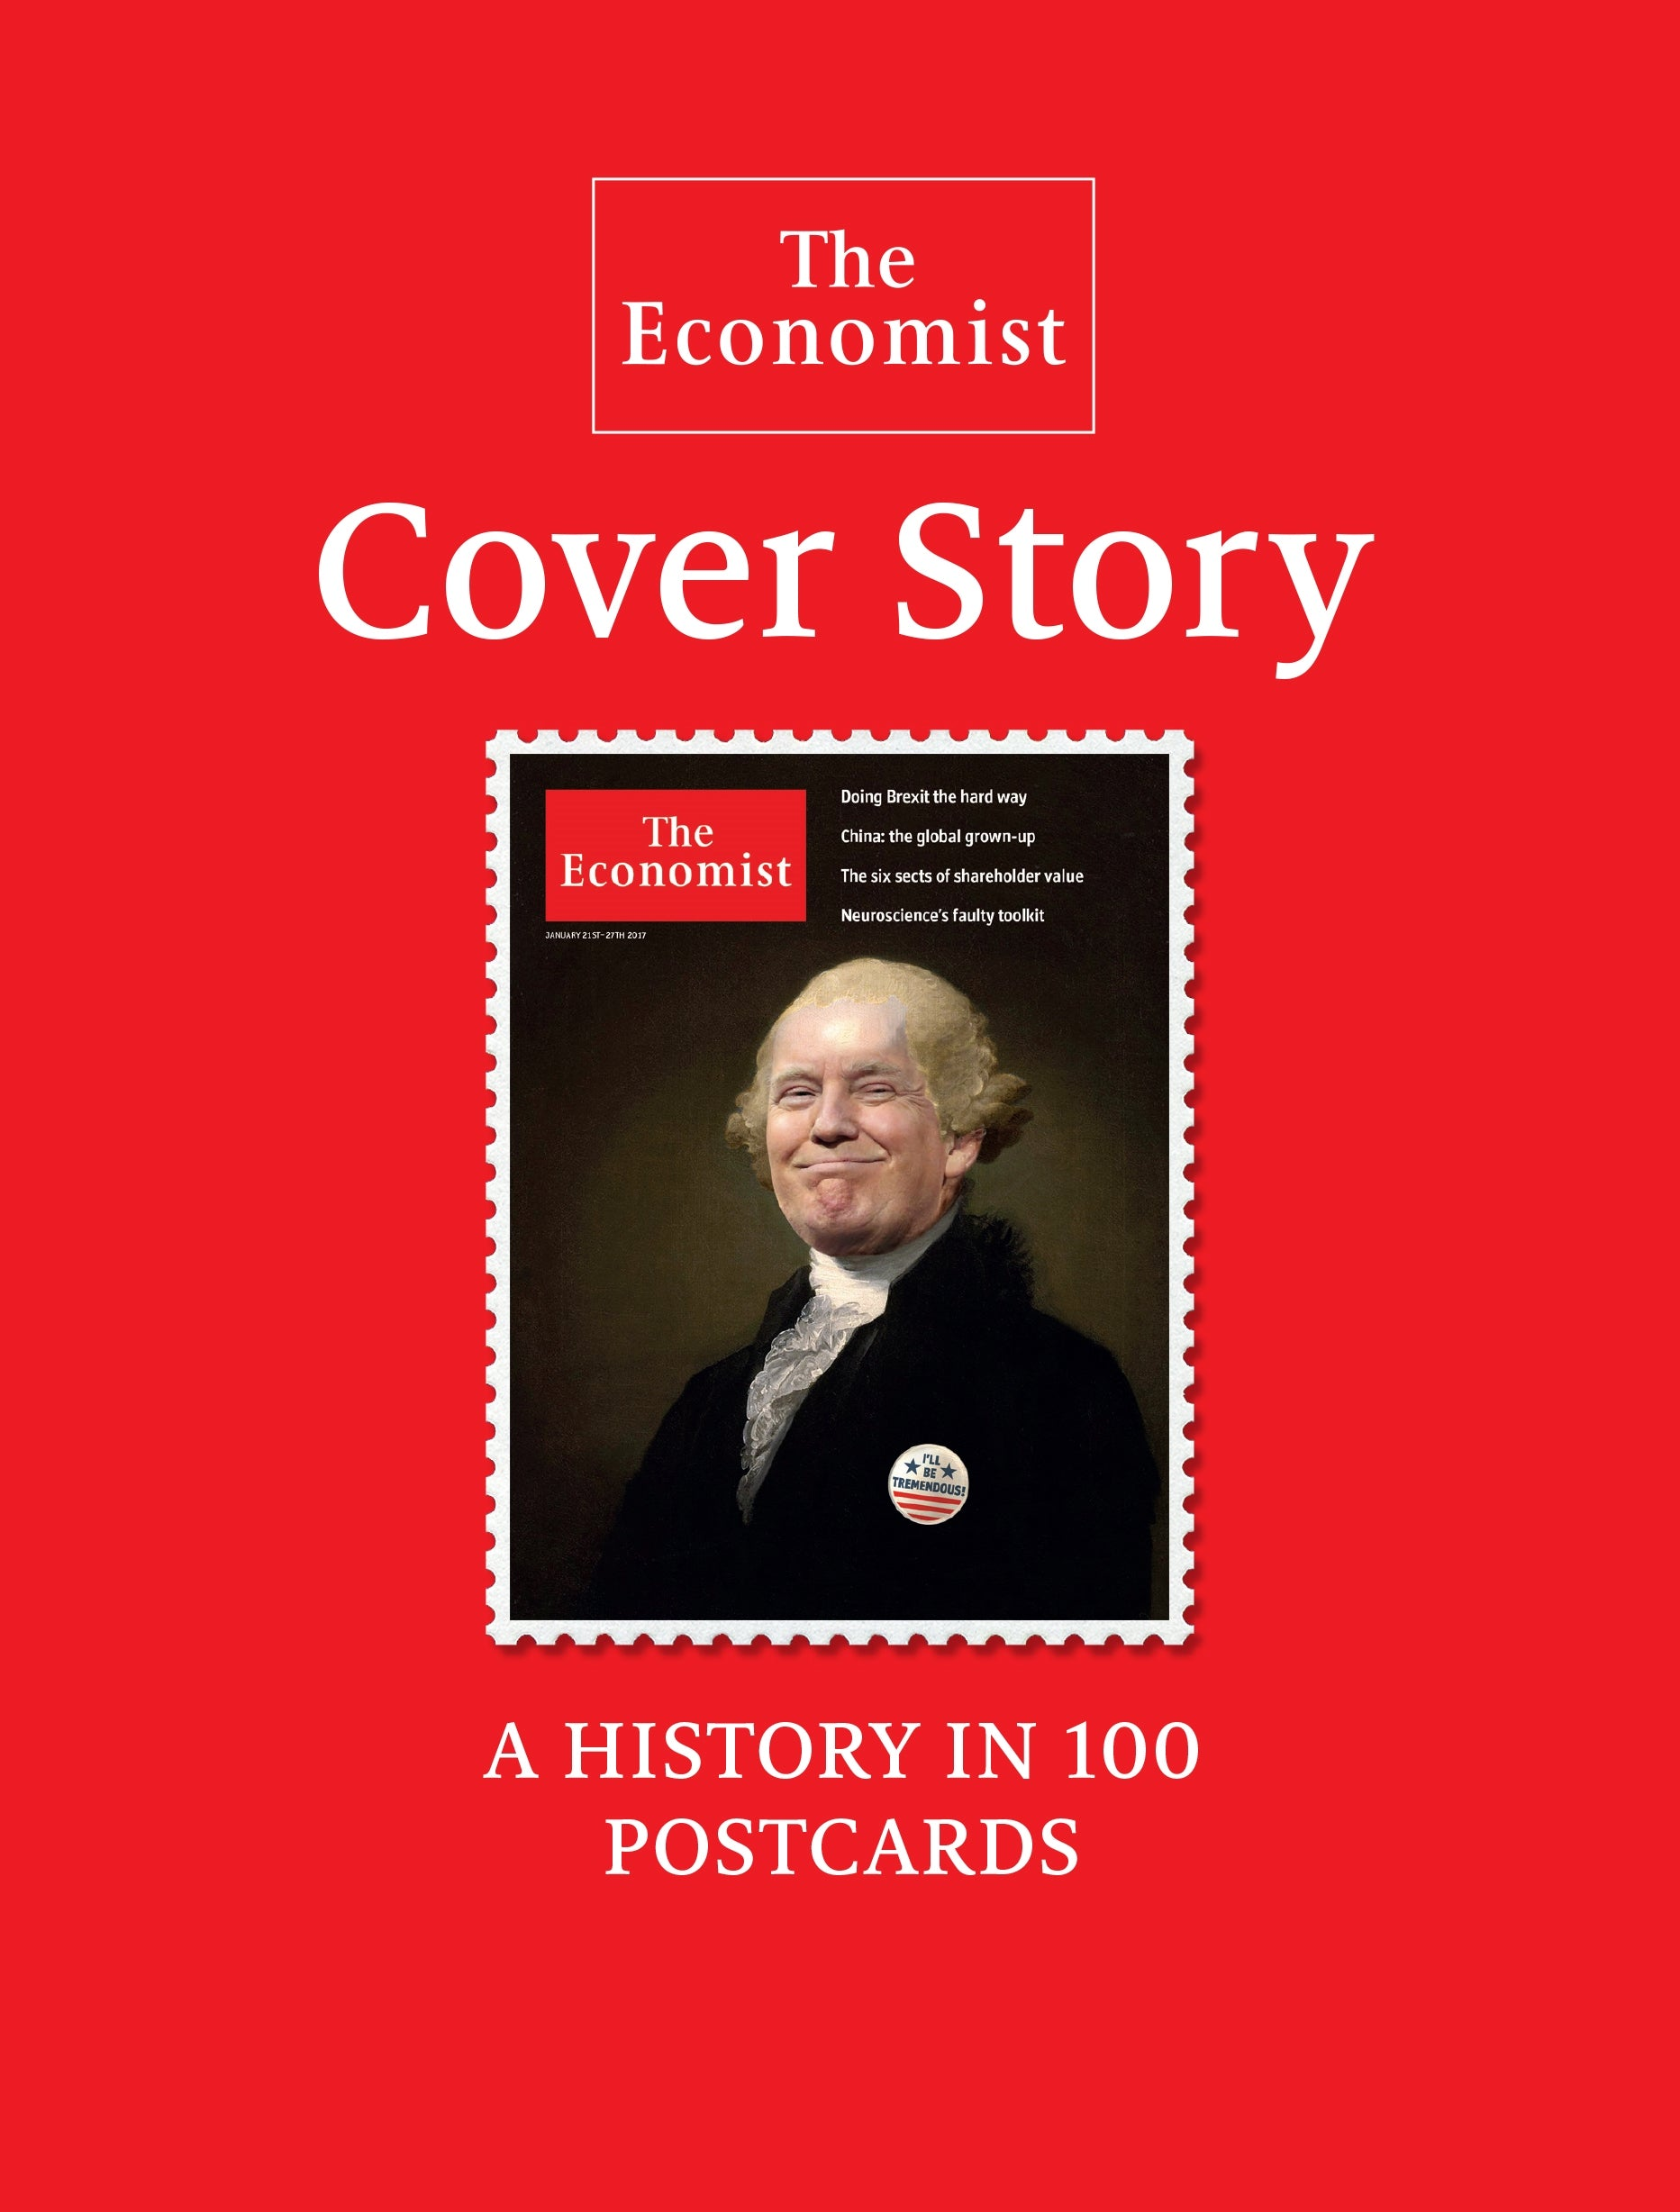 The Economist: Cover Story